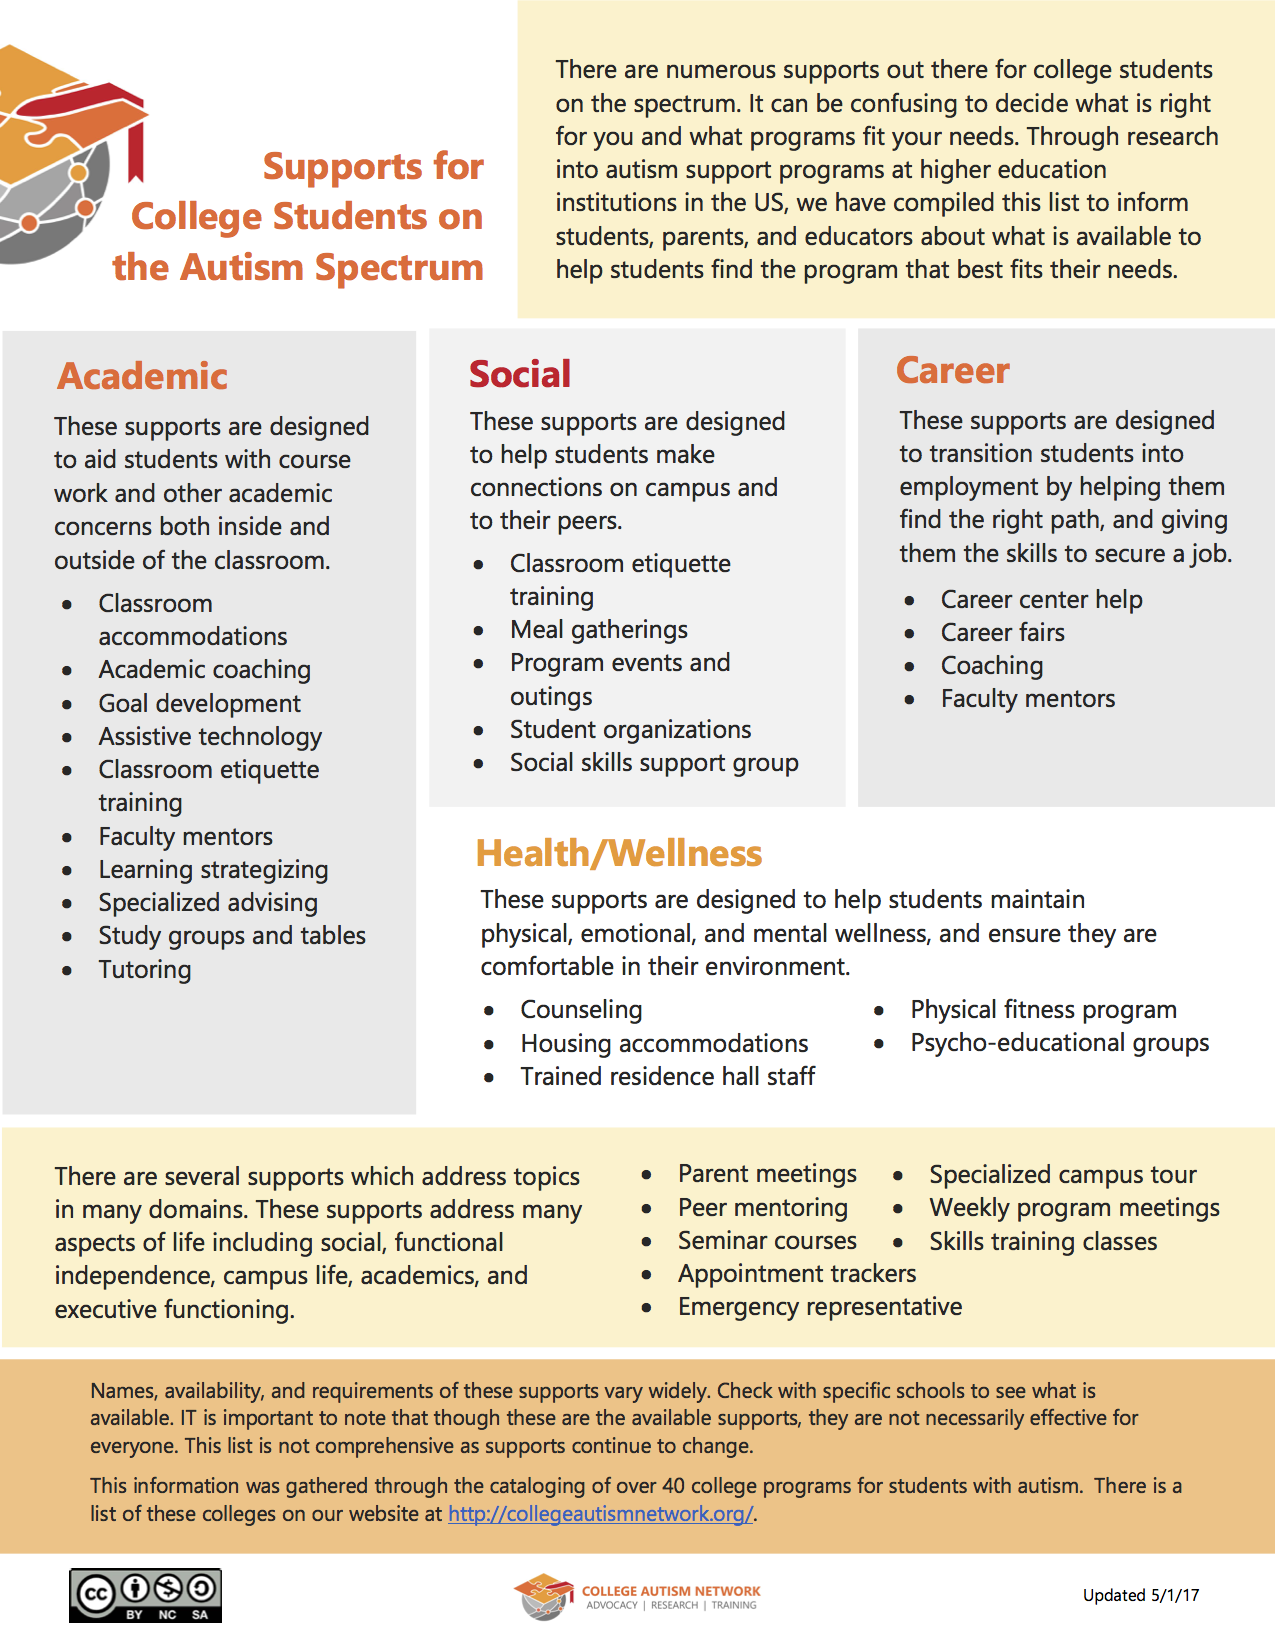 Types of Support for College Students with Autism | College